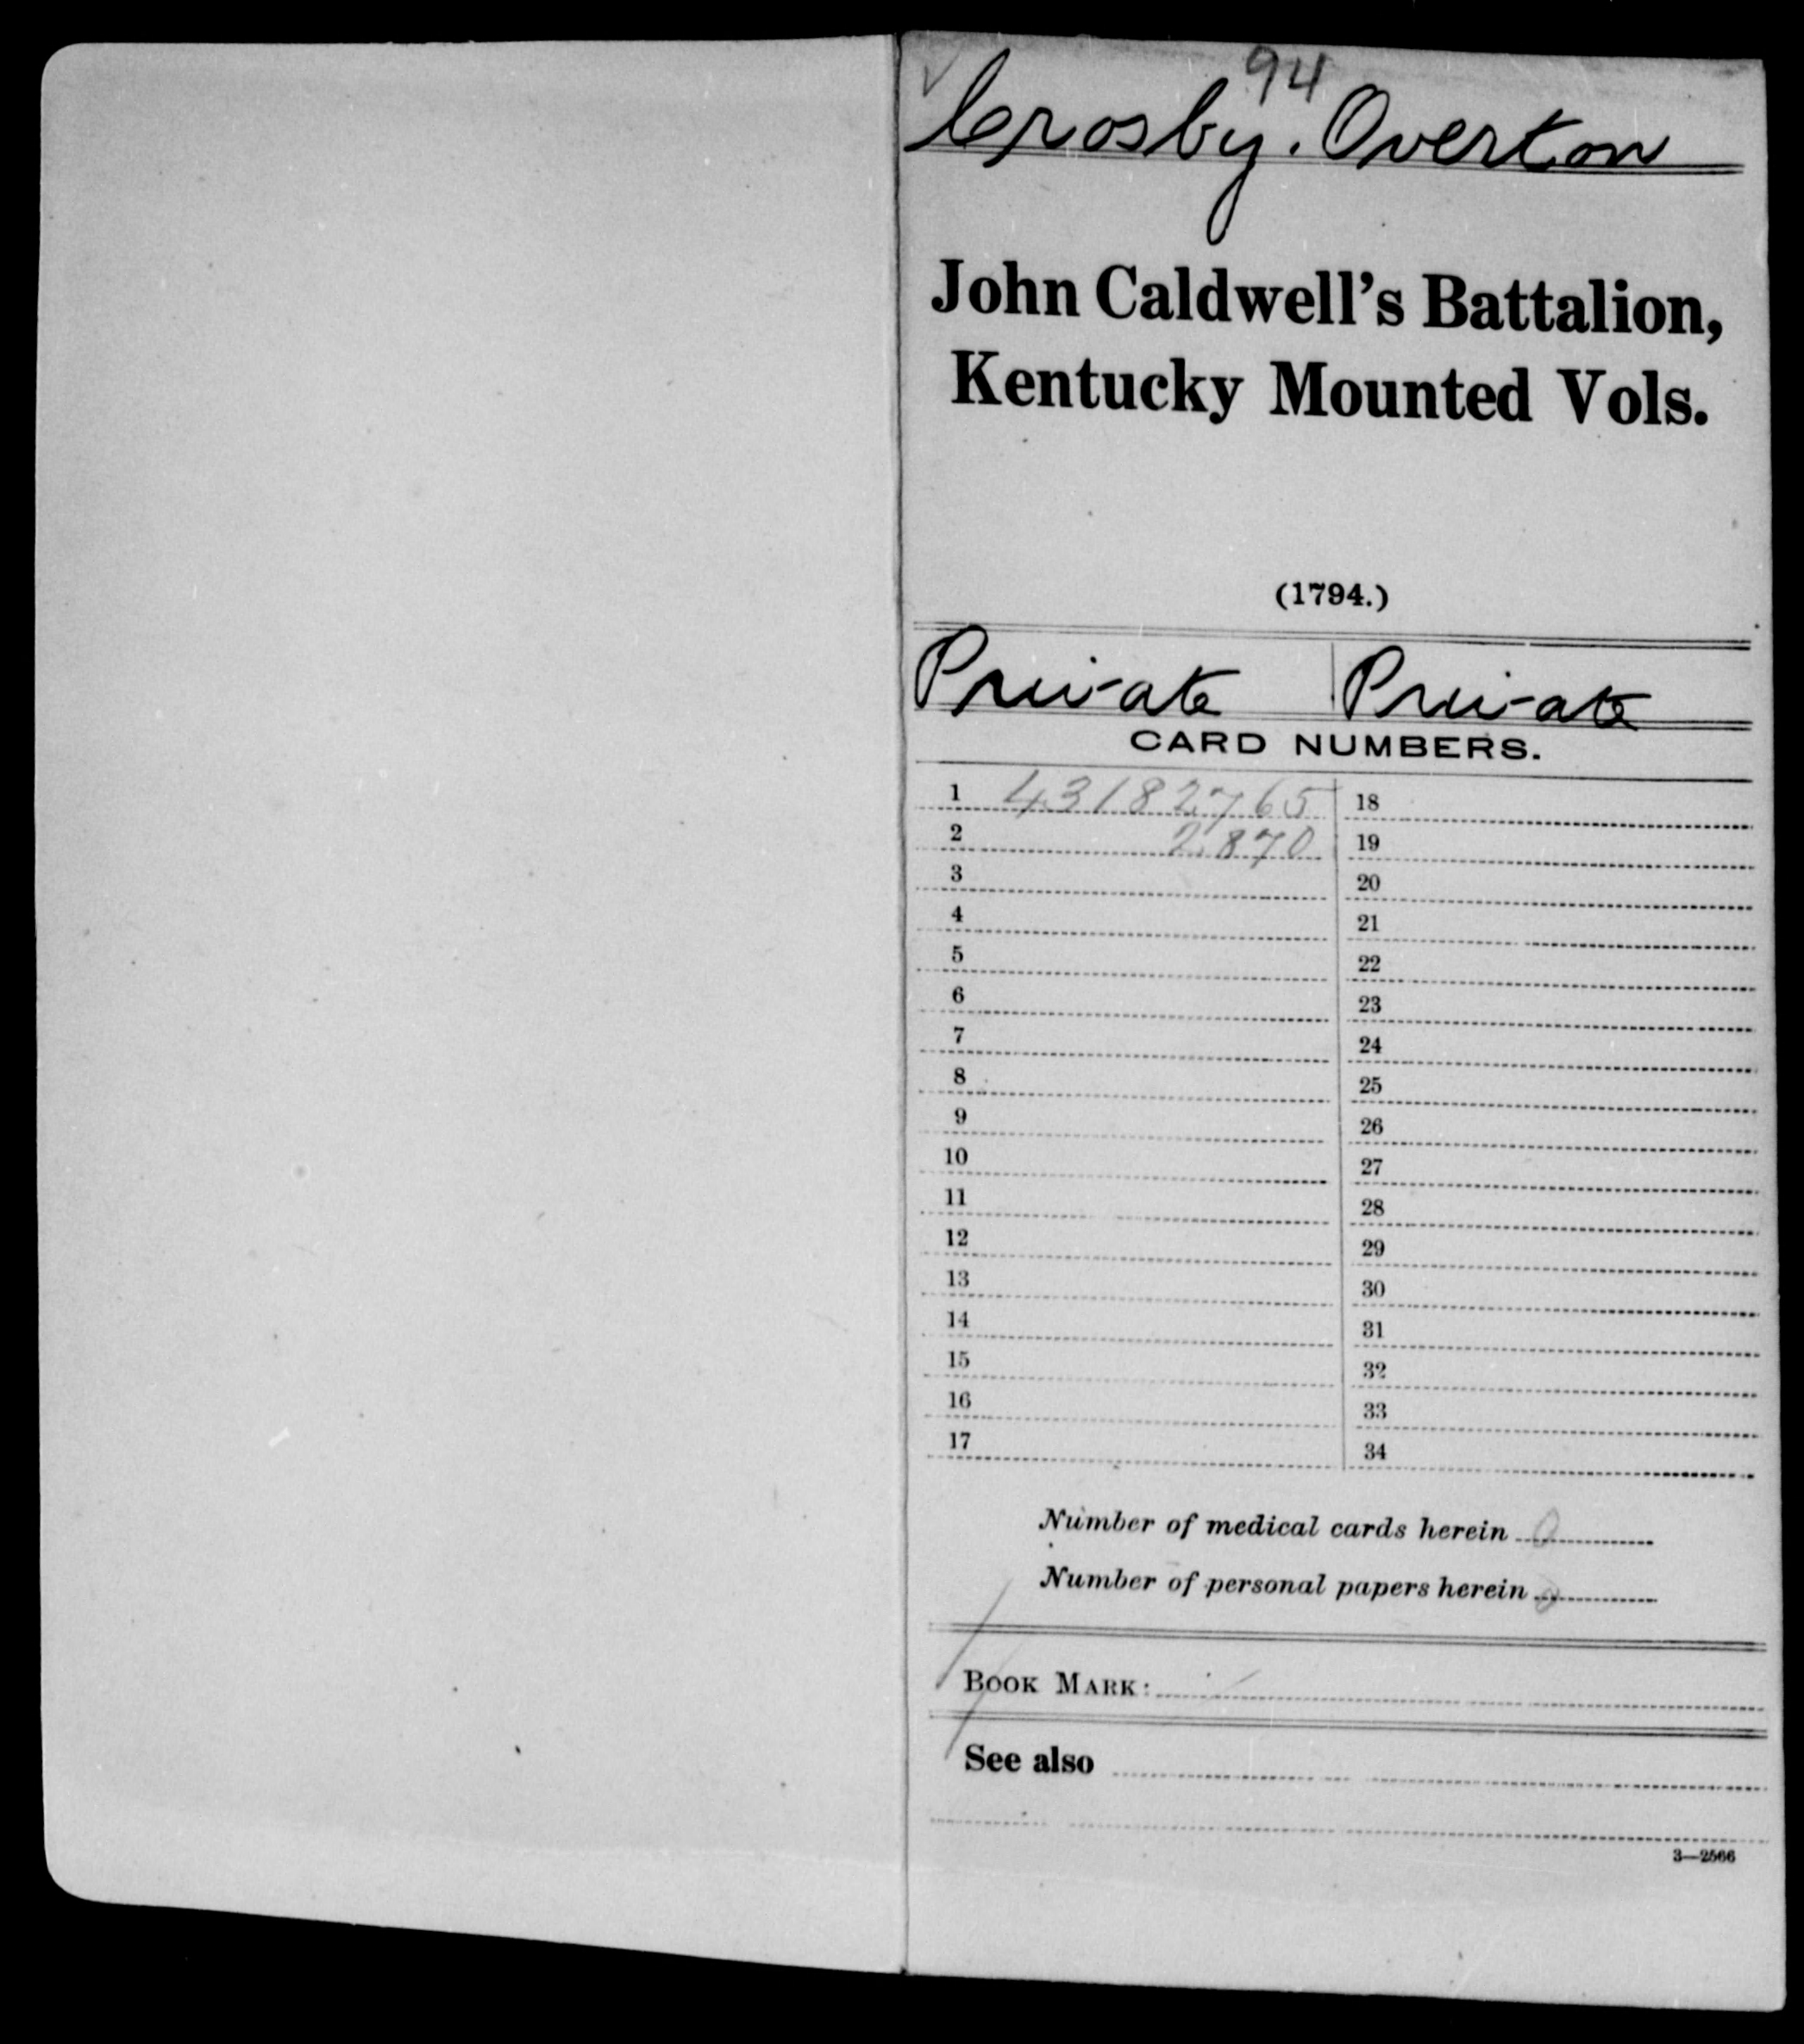 Compiled Military Service Record of Overton Crosby, John Caldwell's Battalion, Mounted Volunteers, Kentucky, 1794